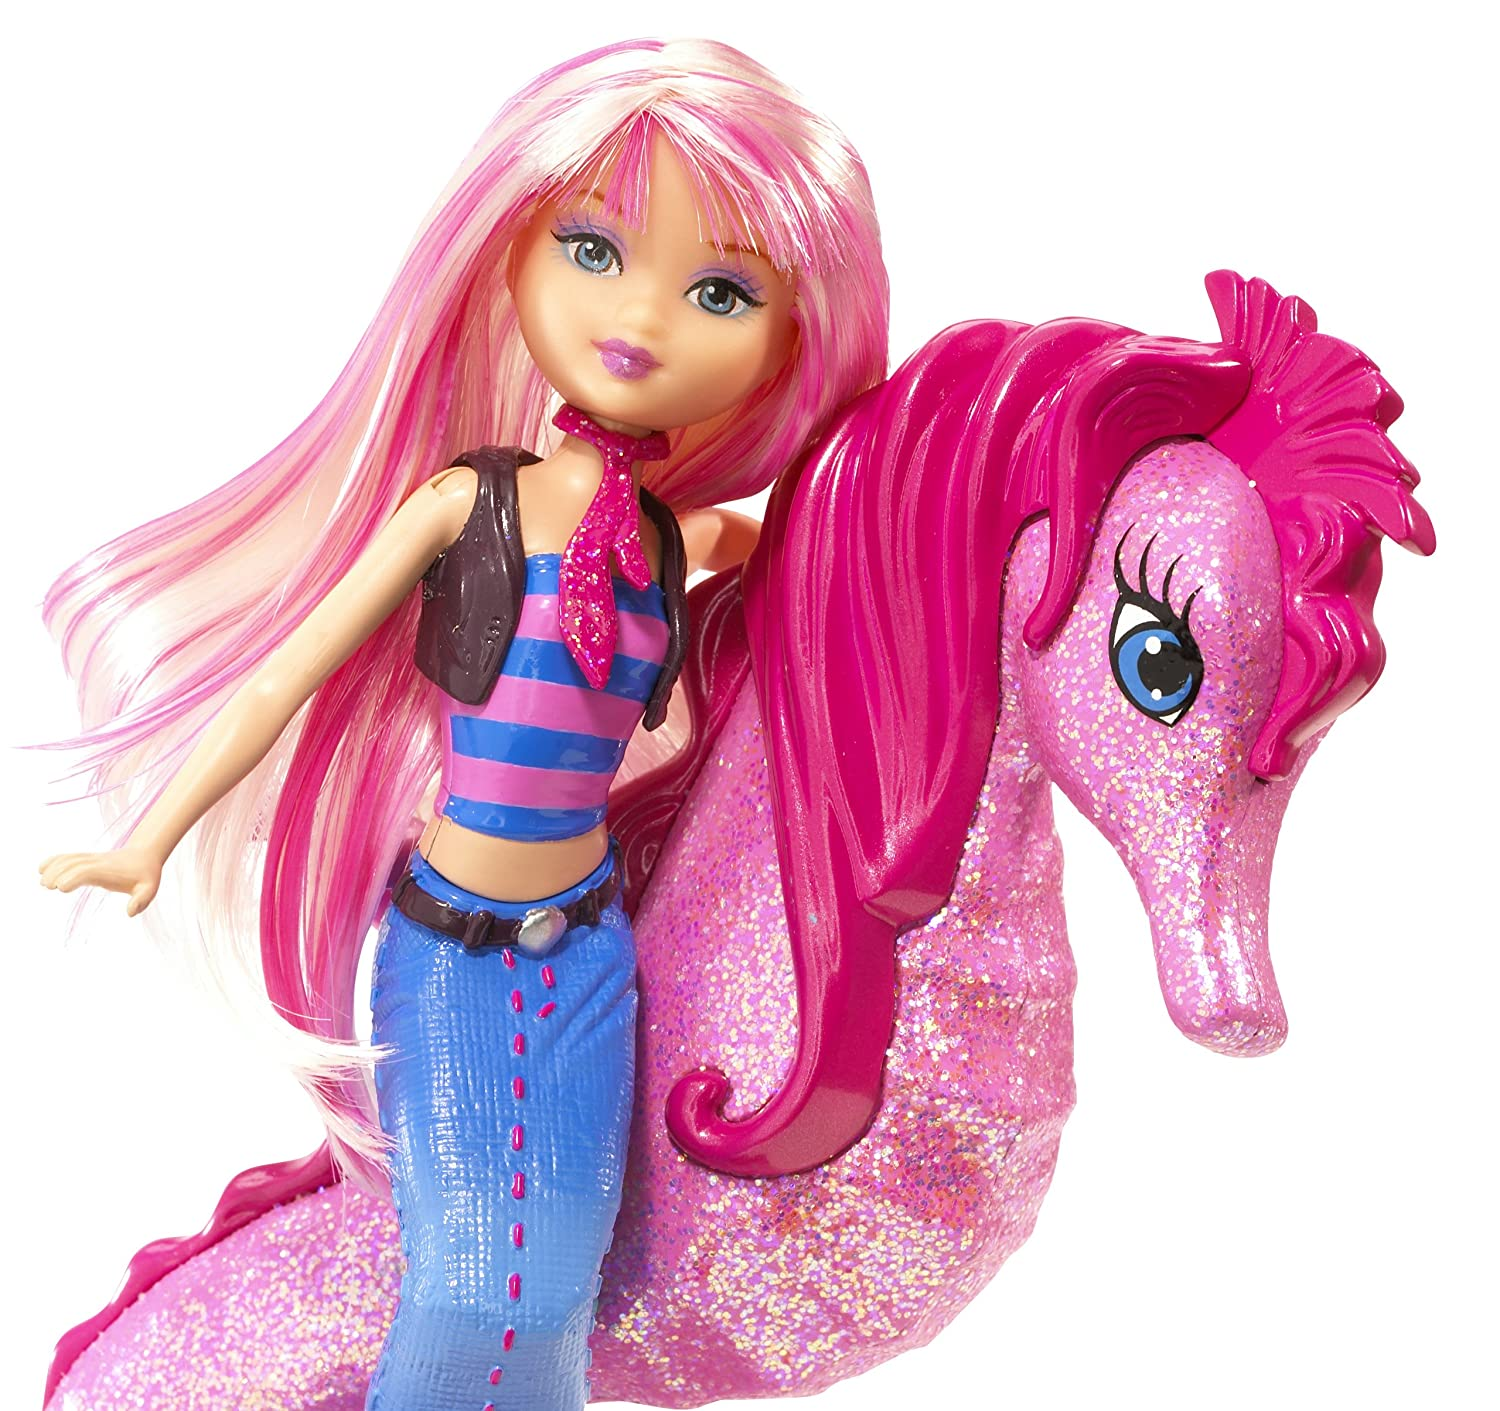 Uncategorized Barbie Mermaid Pictures amazon com barbie in a mermaid tale seahorse stylist doll pink toys games